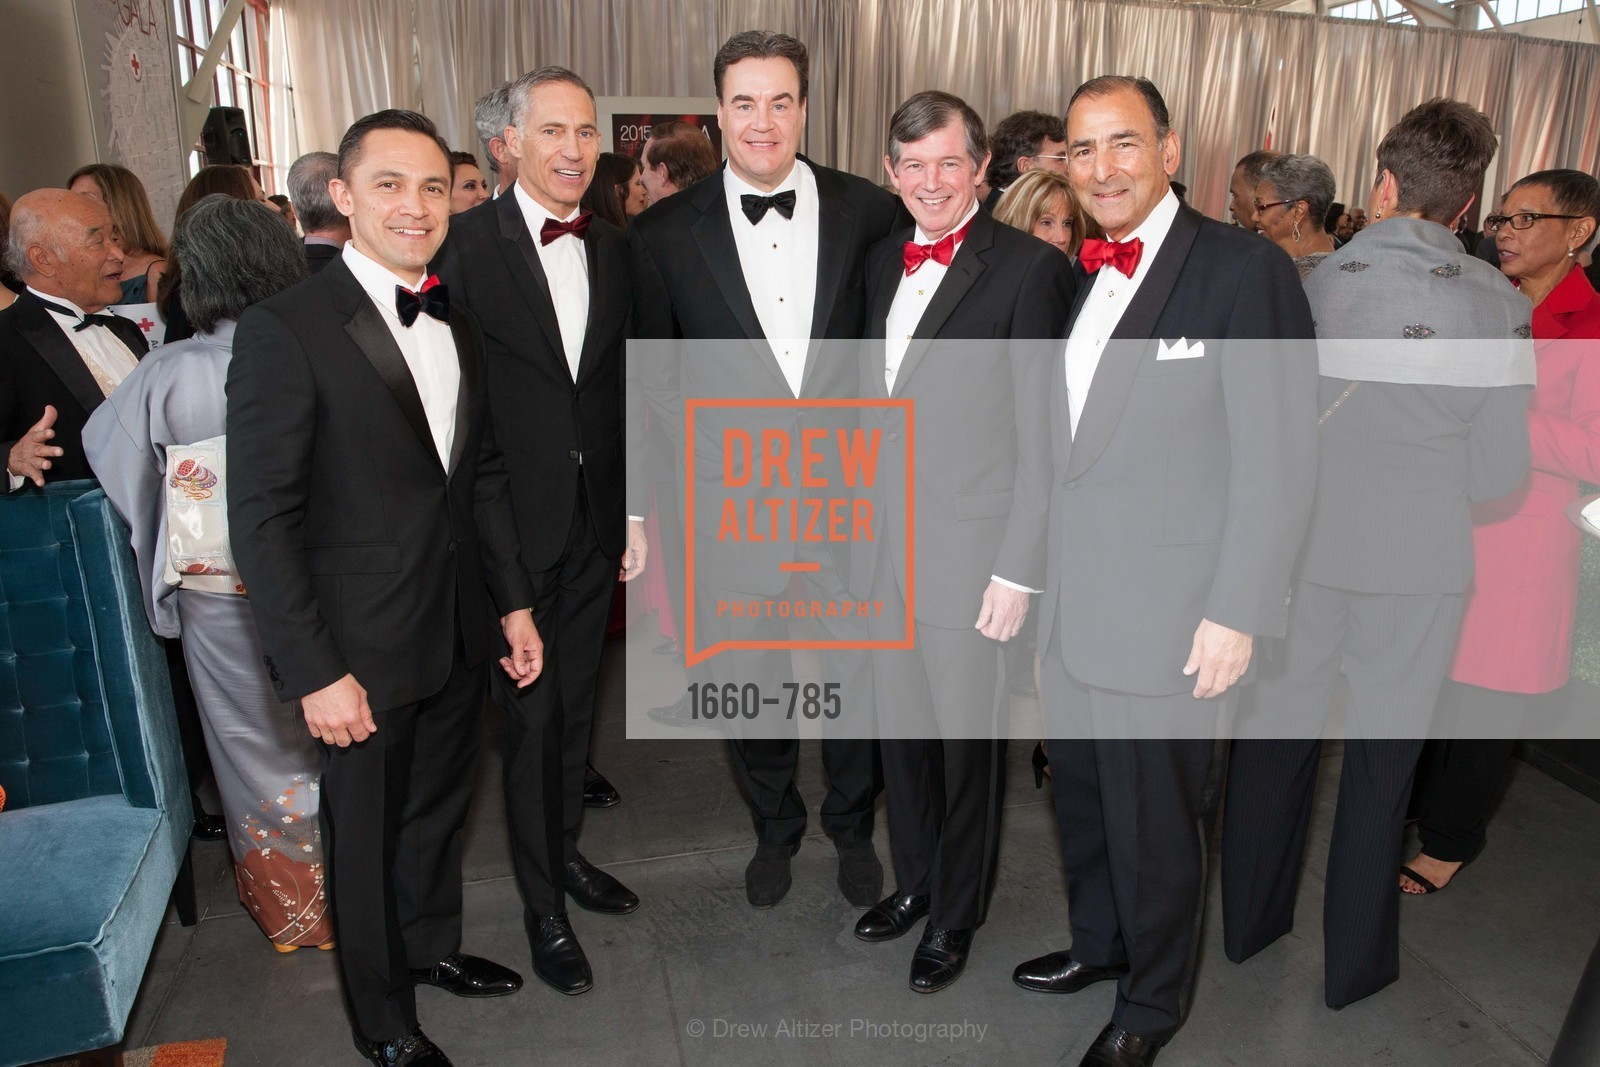 Ezra Garrett, Mark Cloutier, Jim Messemer, Anthony Earley, Alexander Mehran, 2015 RED CROSS Gala, US, April 11th, 2015,Drew Altizer, Drew Altizer Photography, full-service agency, private events, San Francisco photographer, photographer california